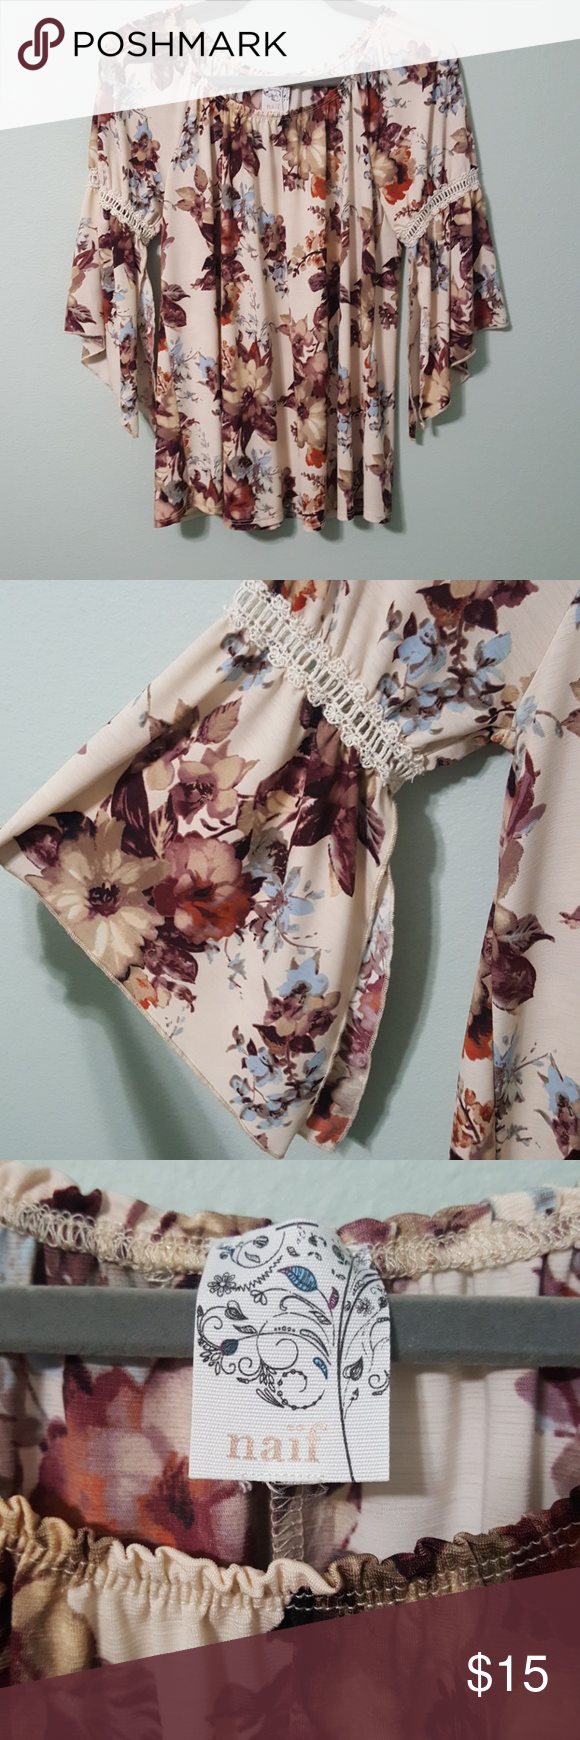 Naif floral blouse with bell sleeve EUC Naif floral blouse with bell sleeves. I believe it is a large, the size tag is missing but measurements are in…